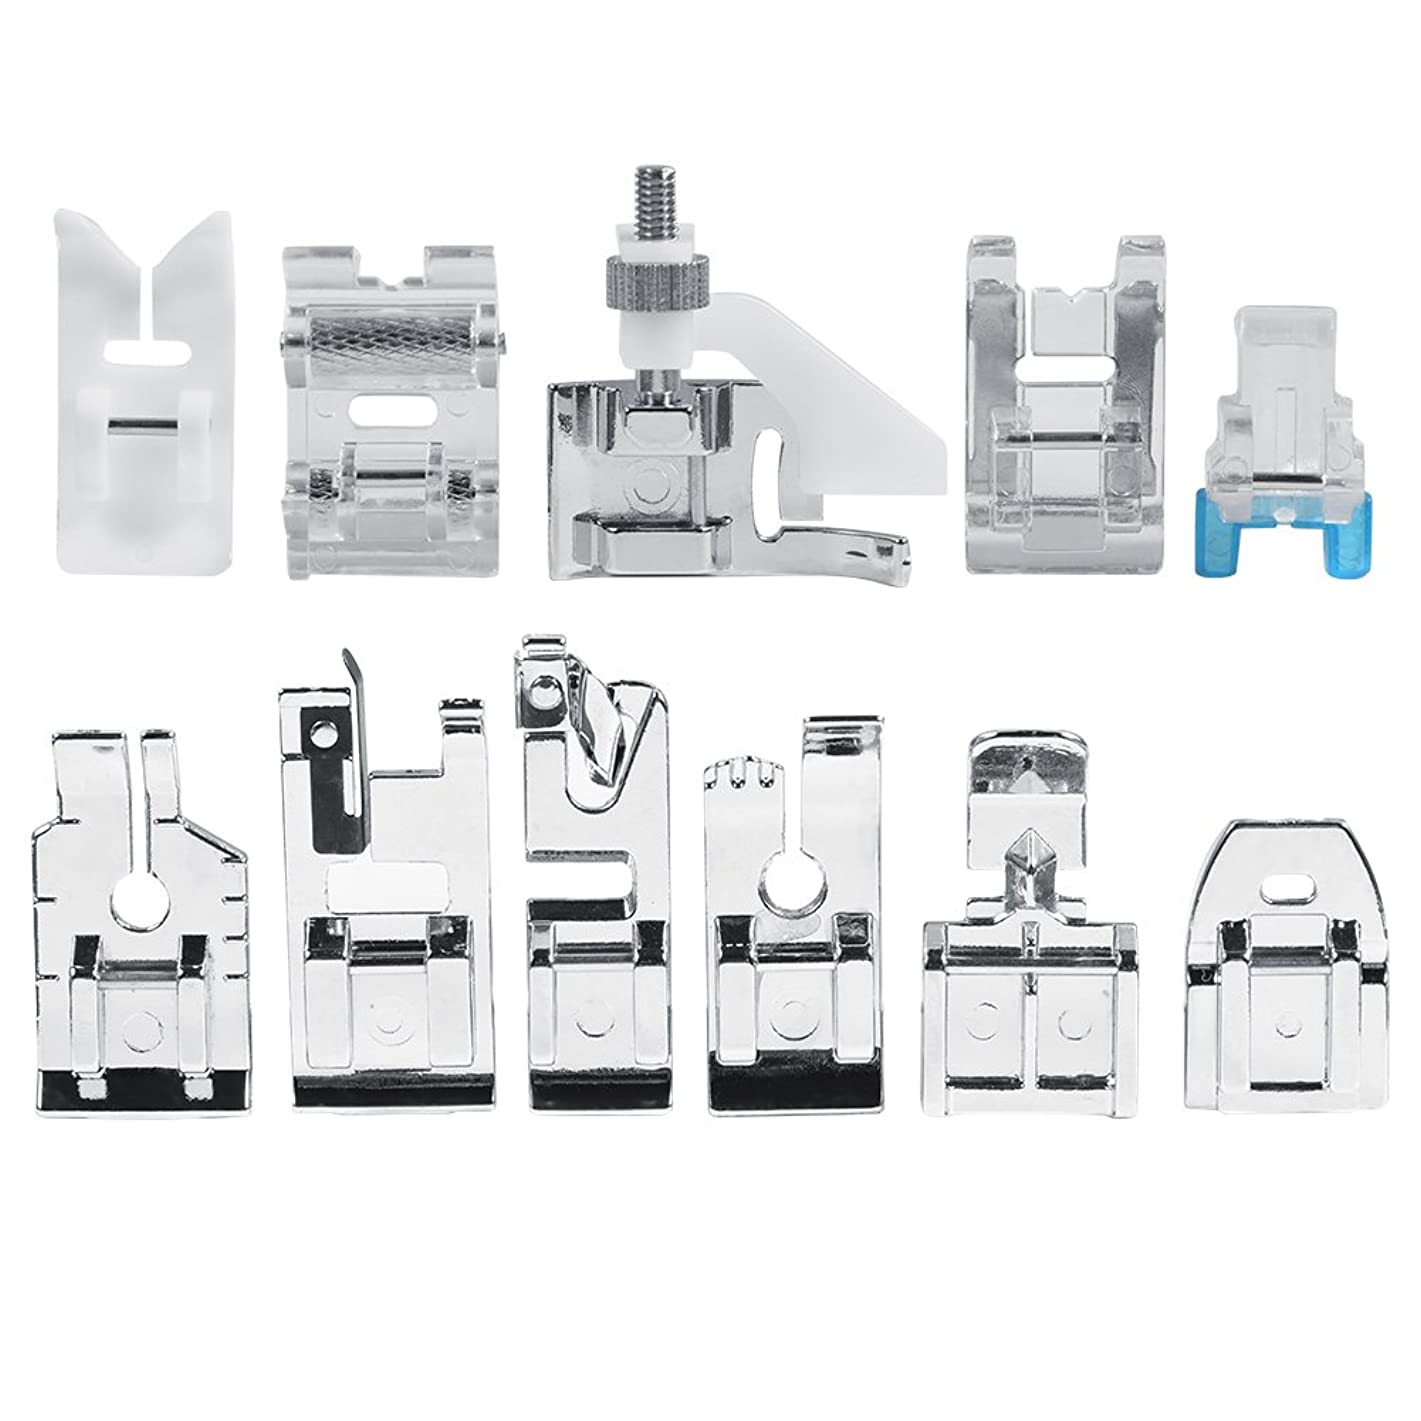 11pcs/Set Household Sewing Machine Parts Quilting Zipper Walking Foot Presser Feet Kit Multifunctional Household Quilting Parts Crafts Sewing